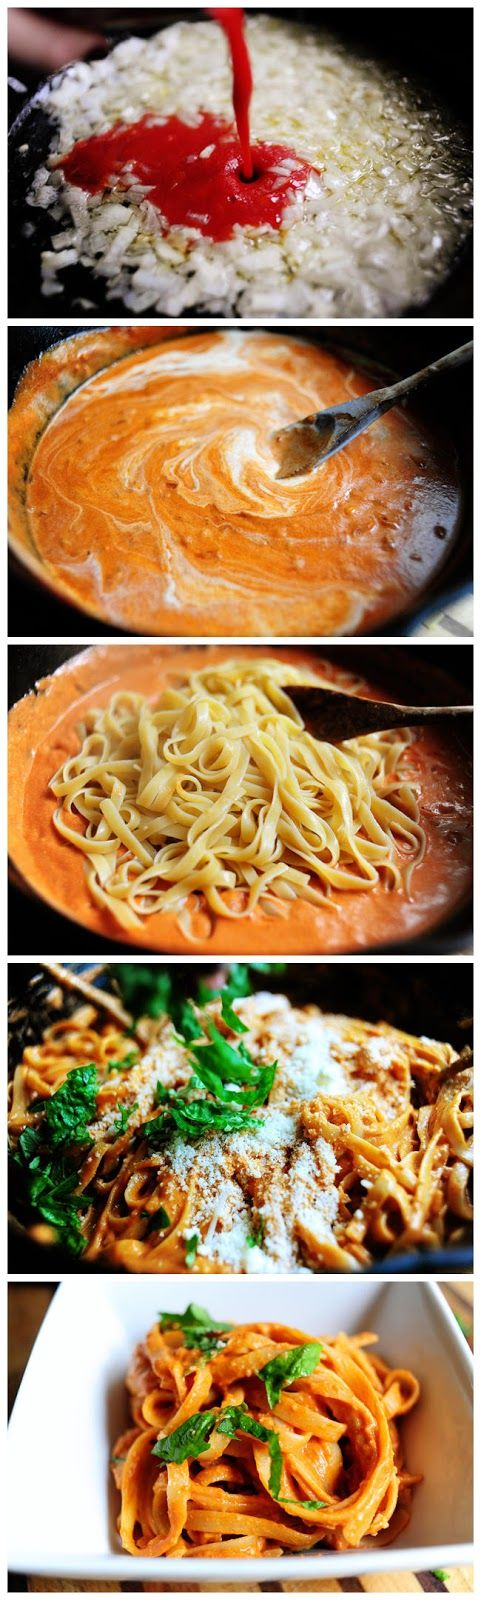 Pasta with Tomato Cream Sauce Recipe ~ delicious!